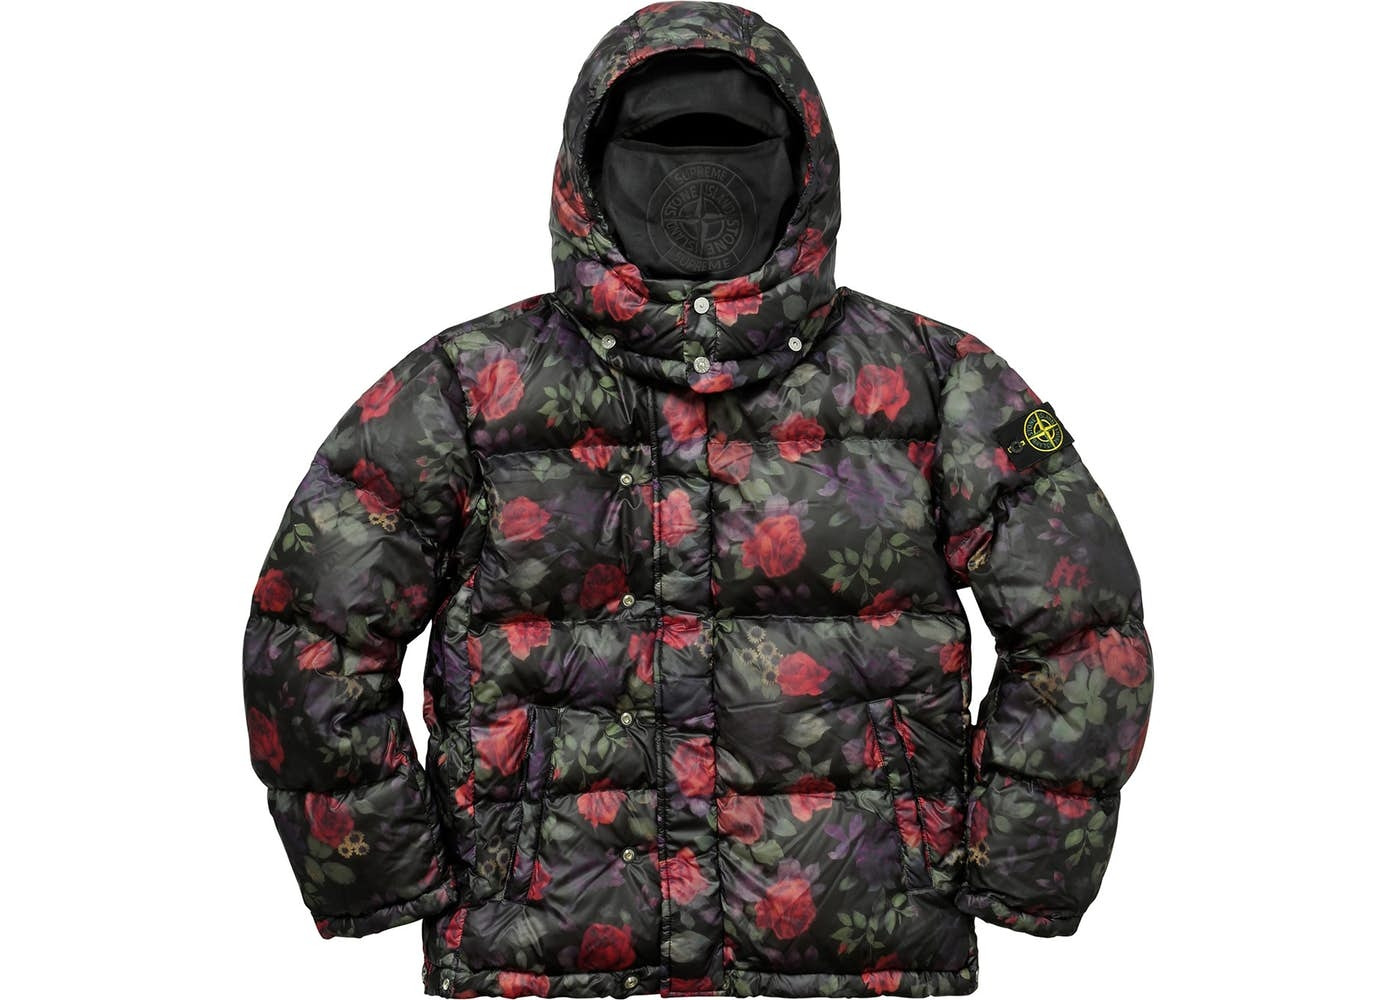 supreme stone island jacket outterwear supreme. Black Bedroom Furniture Sets. Home Design Ideas